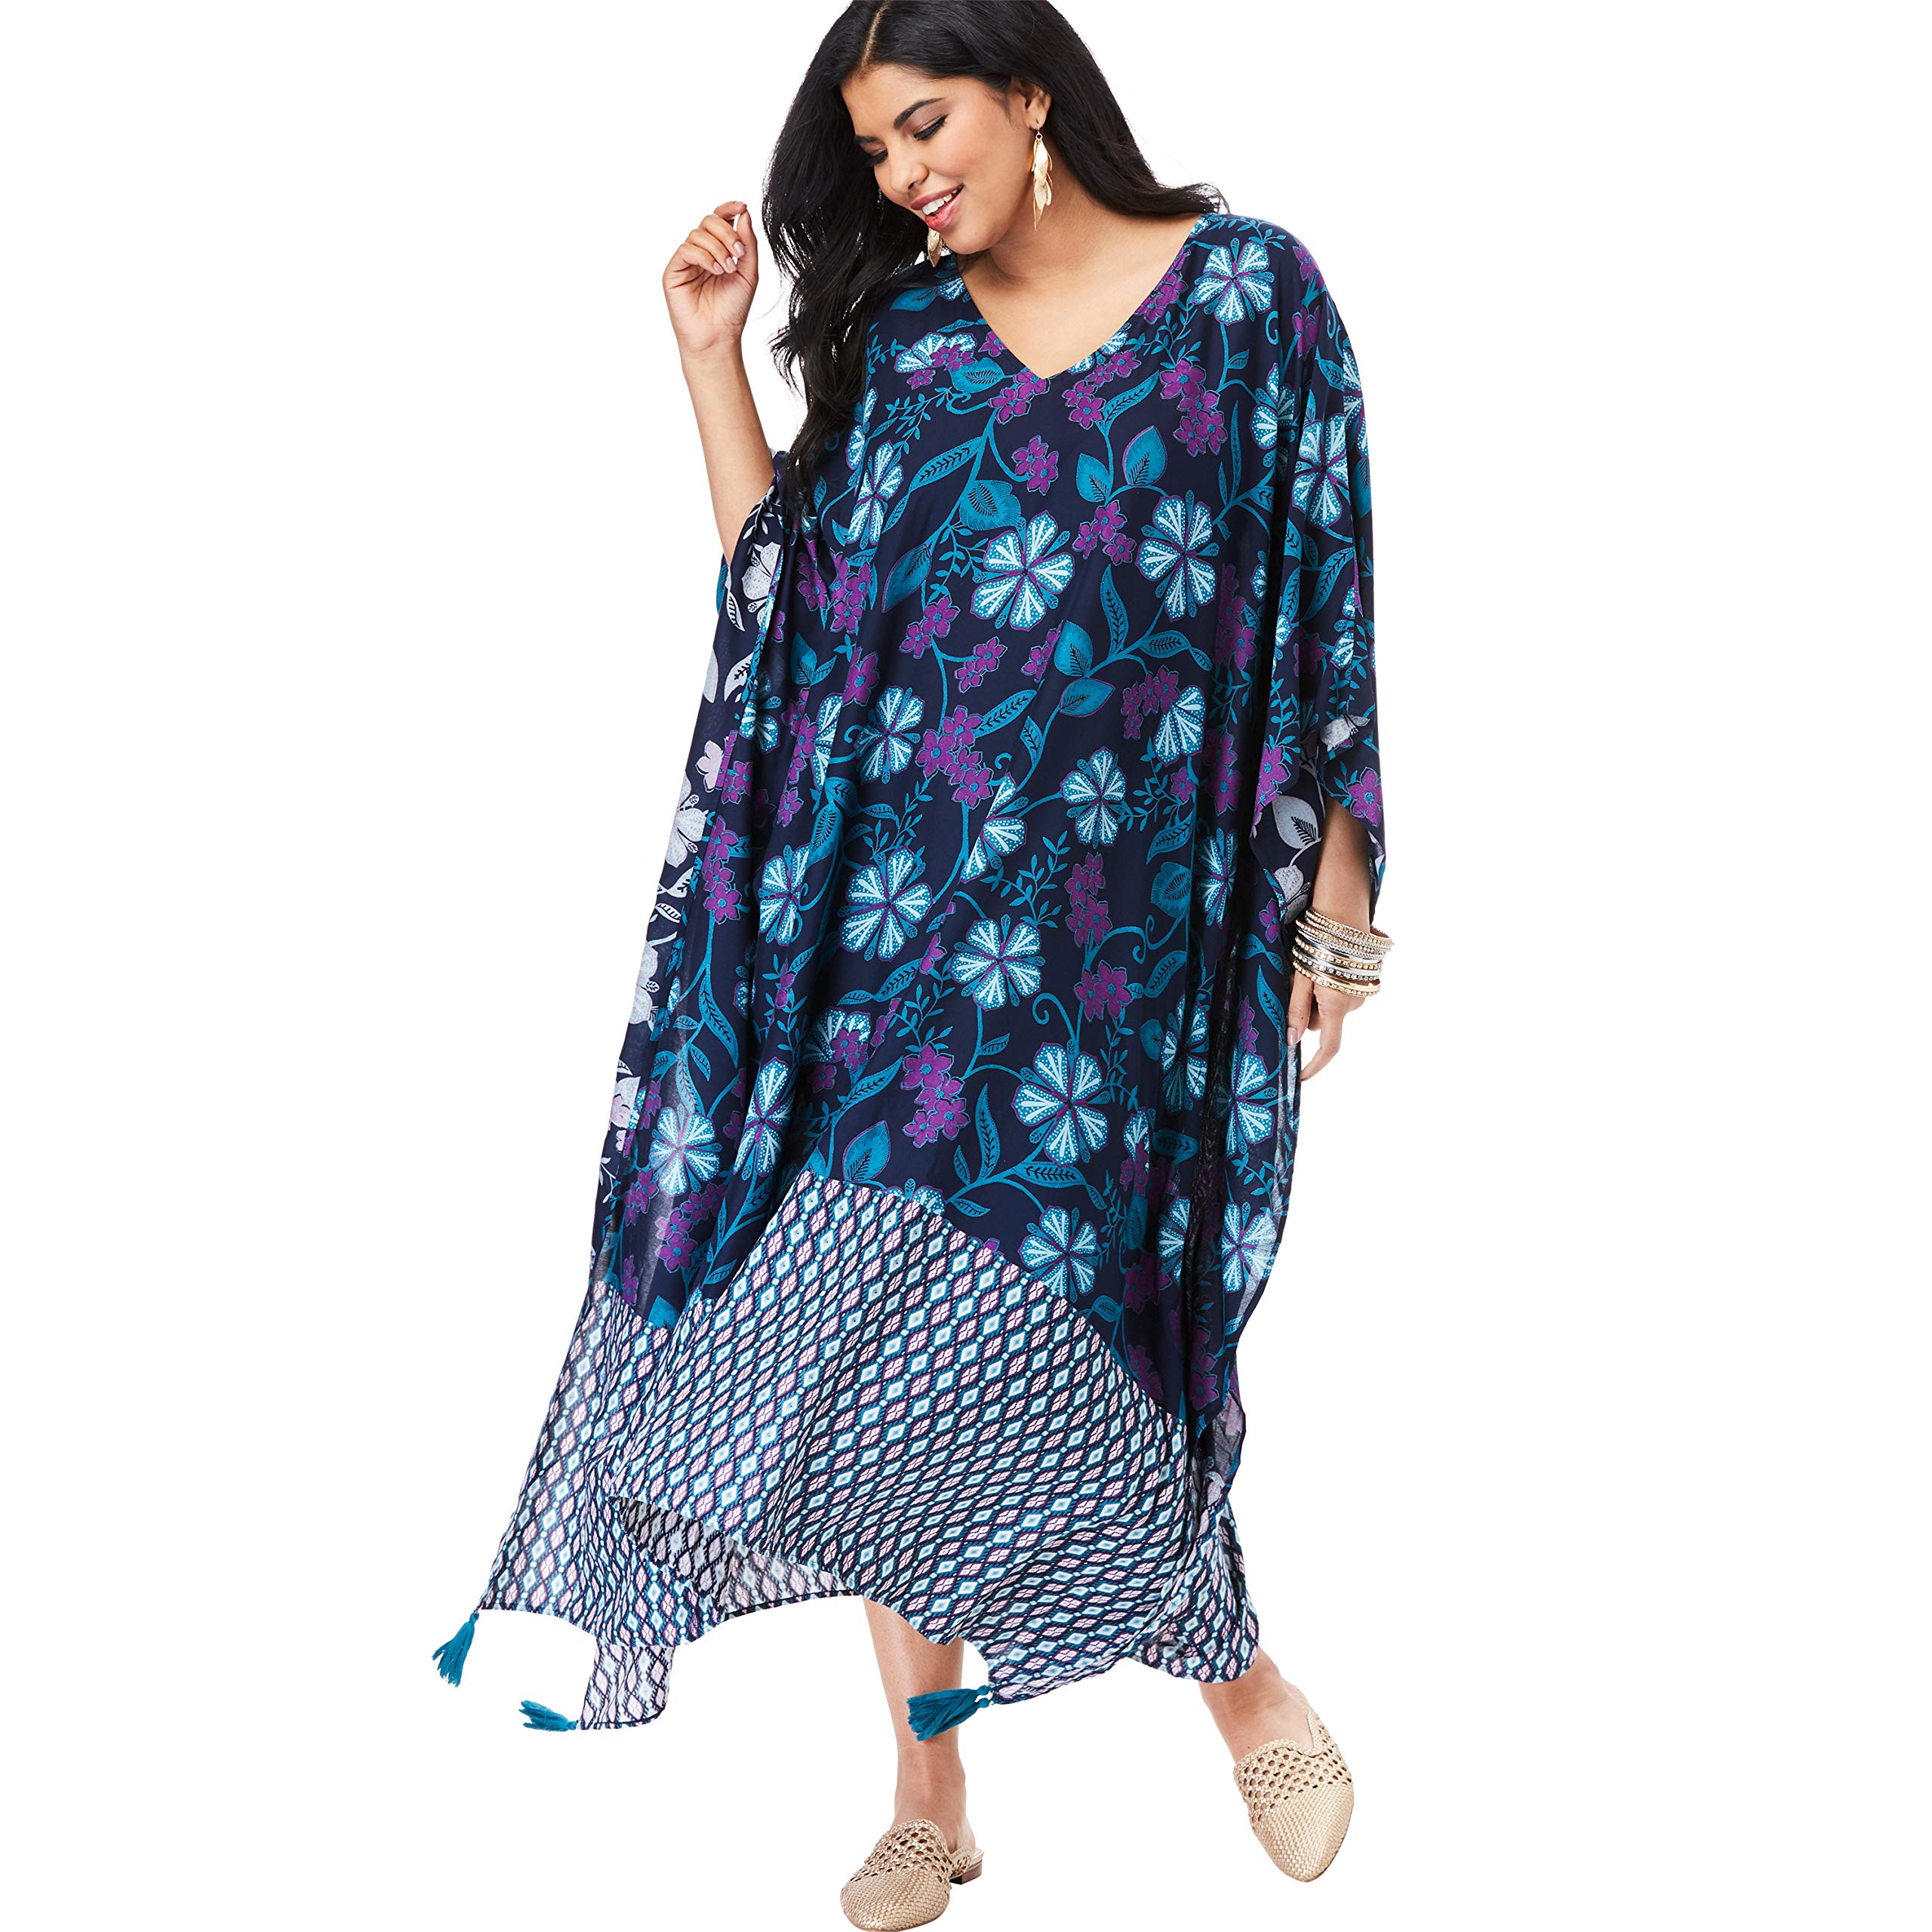 Available at Amazon: Roamans Women's Plus Size V-Neck Caftan Dress with Tassels